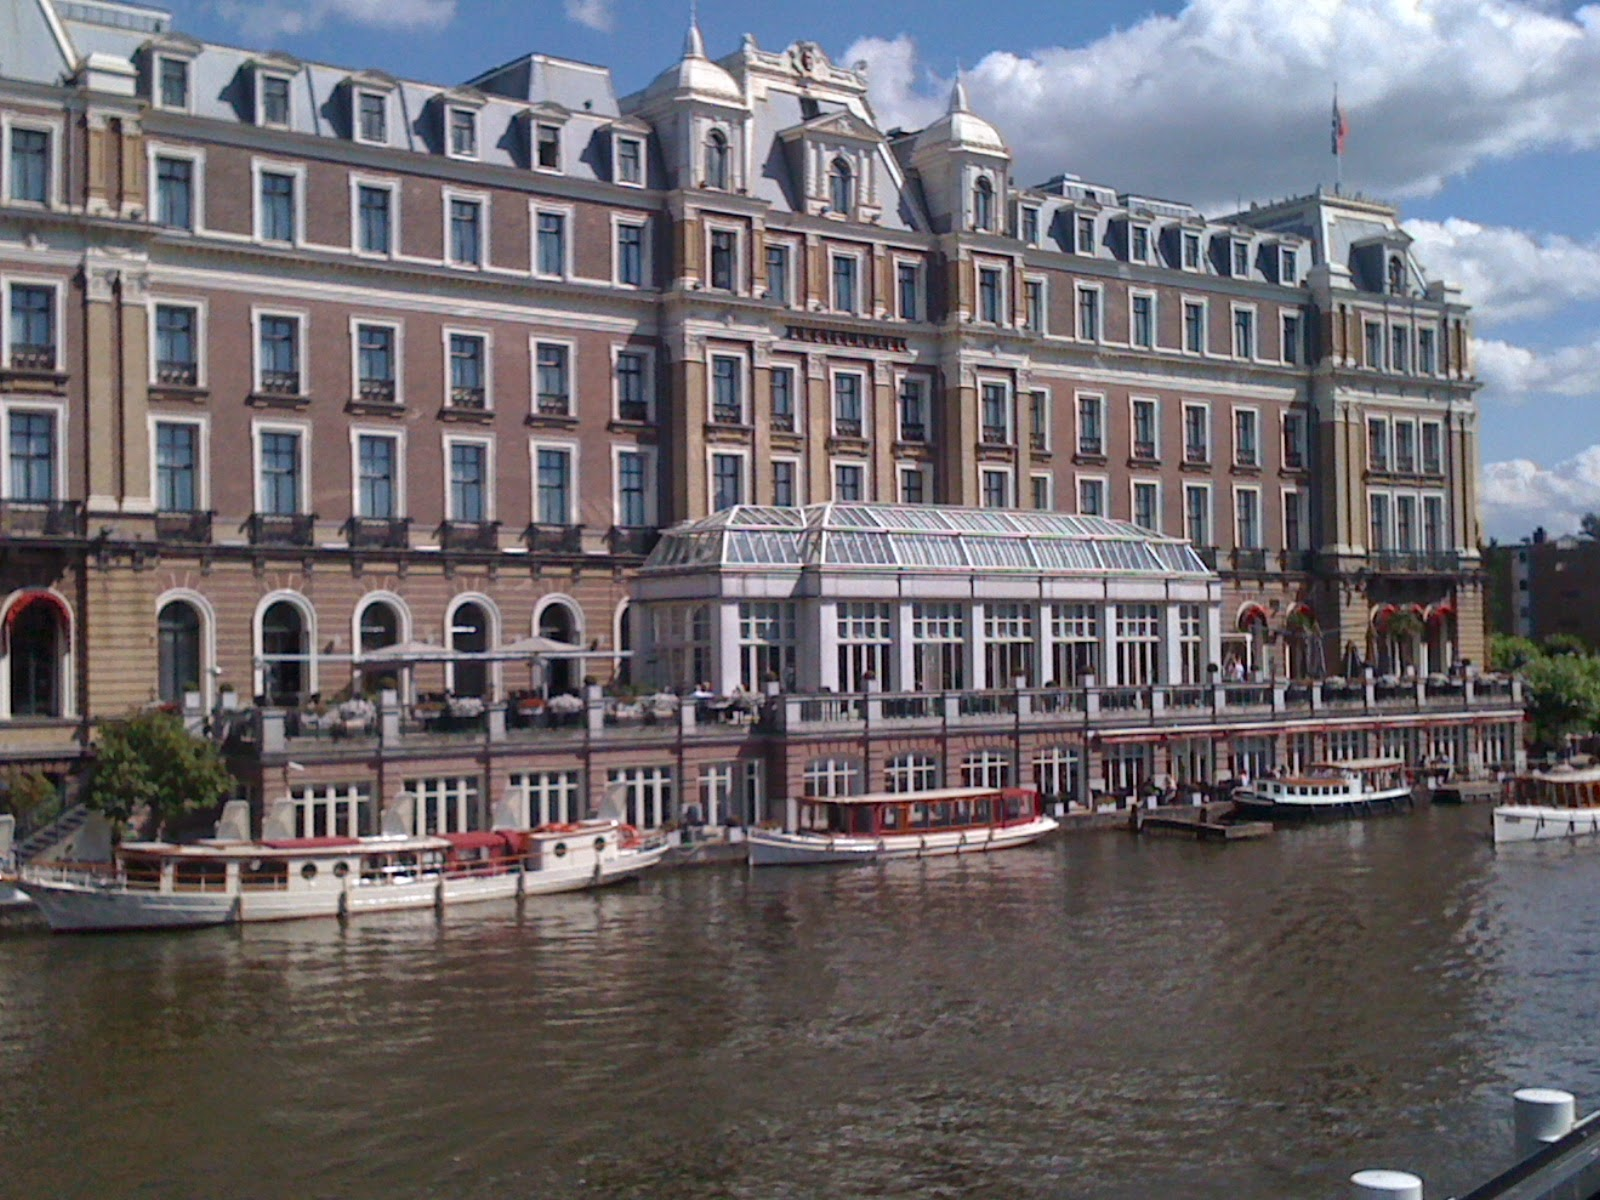 InterConinental Amstel Hotel